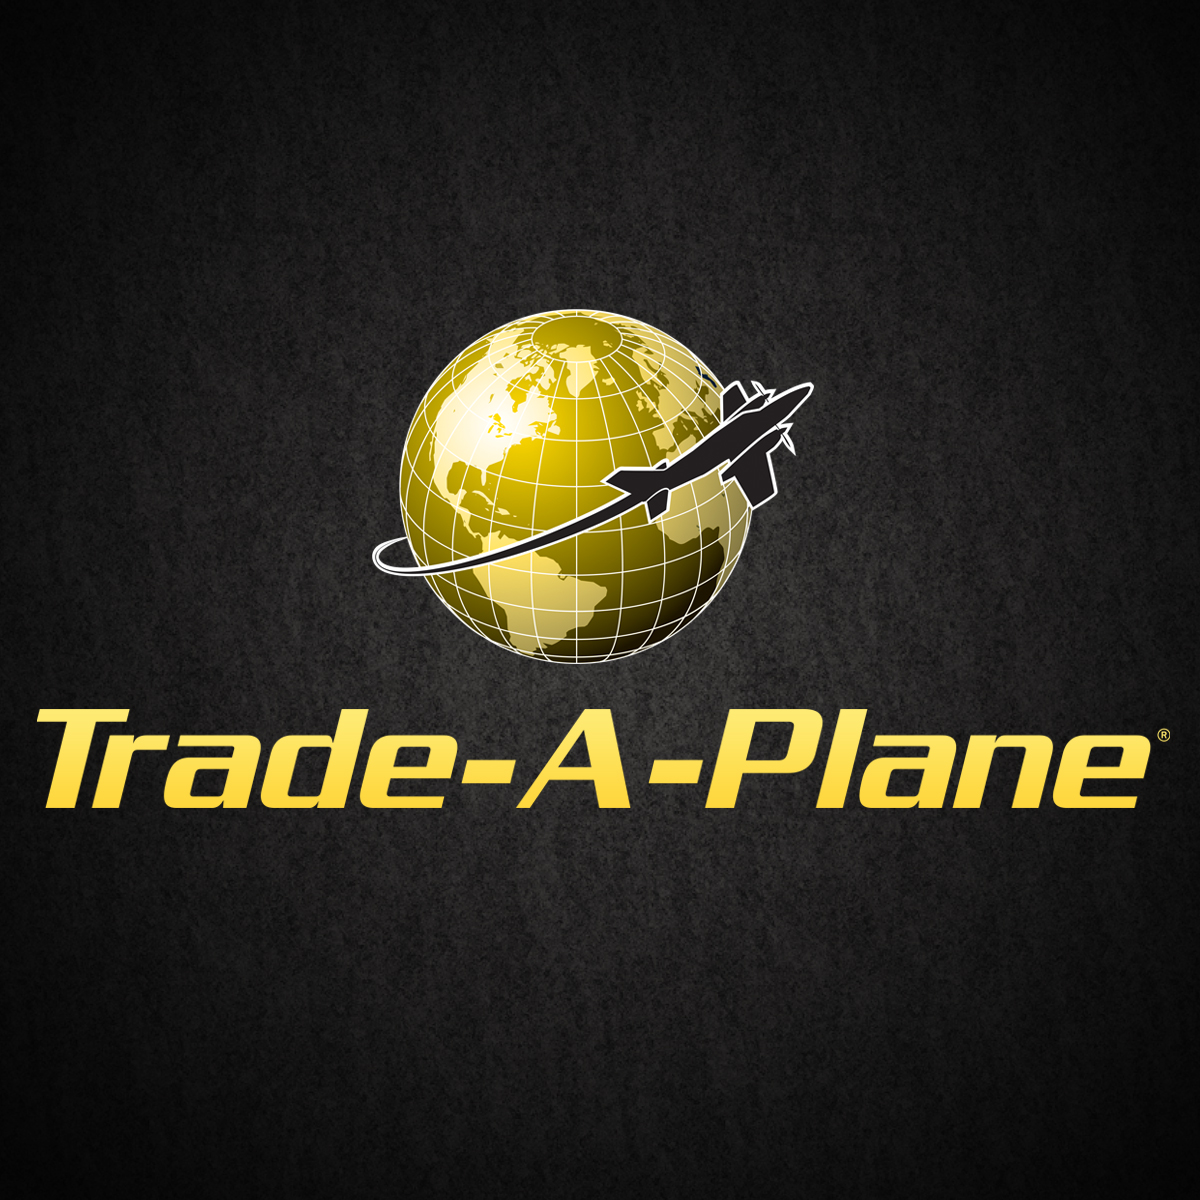 Search For Aircraft & Aircraft Parts - Airplane Sale, Jets